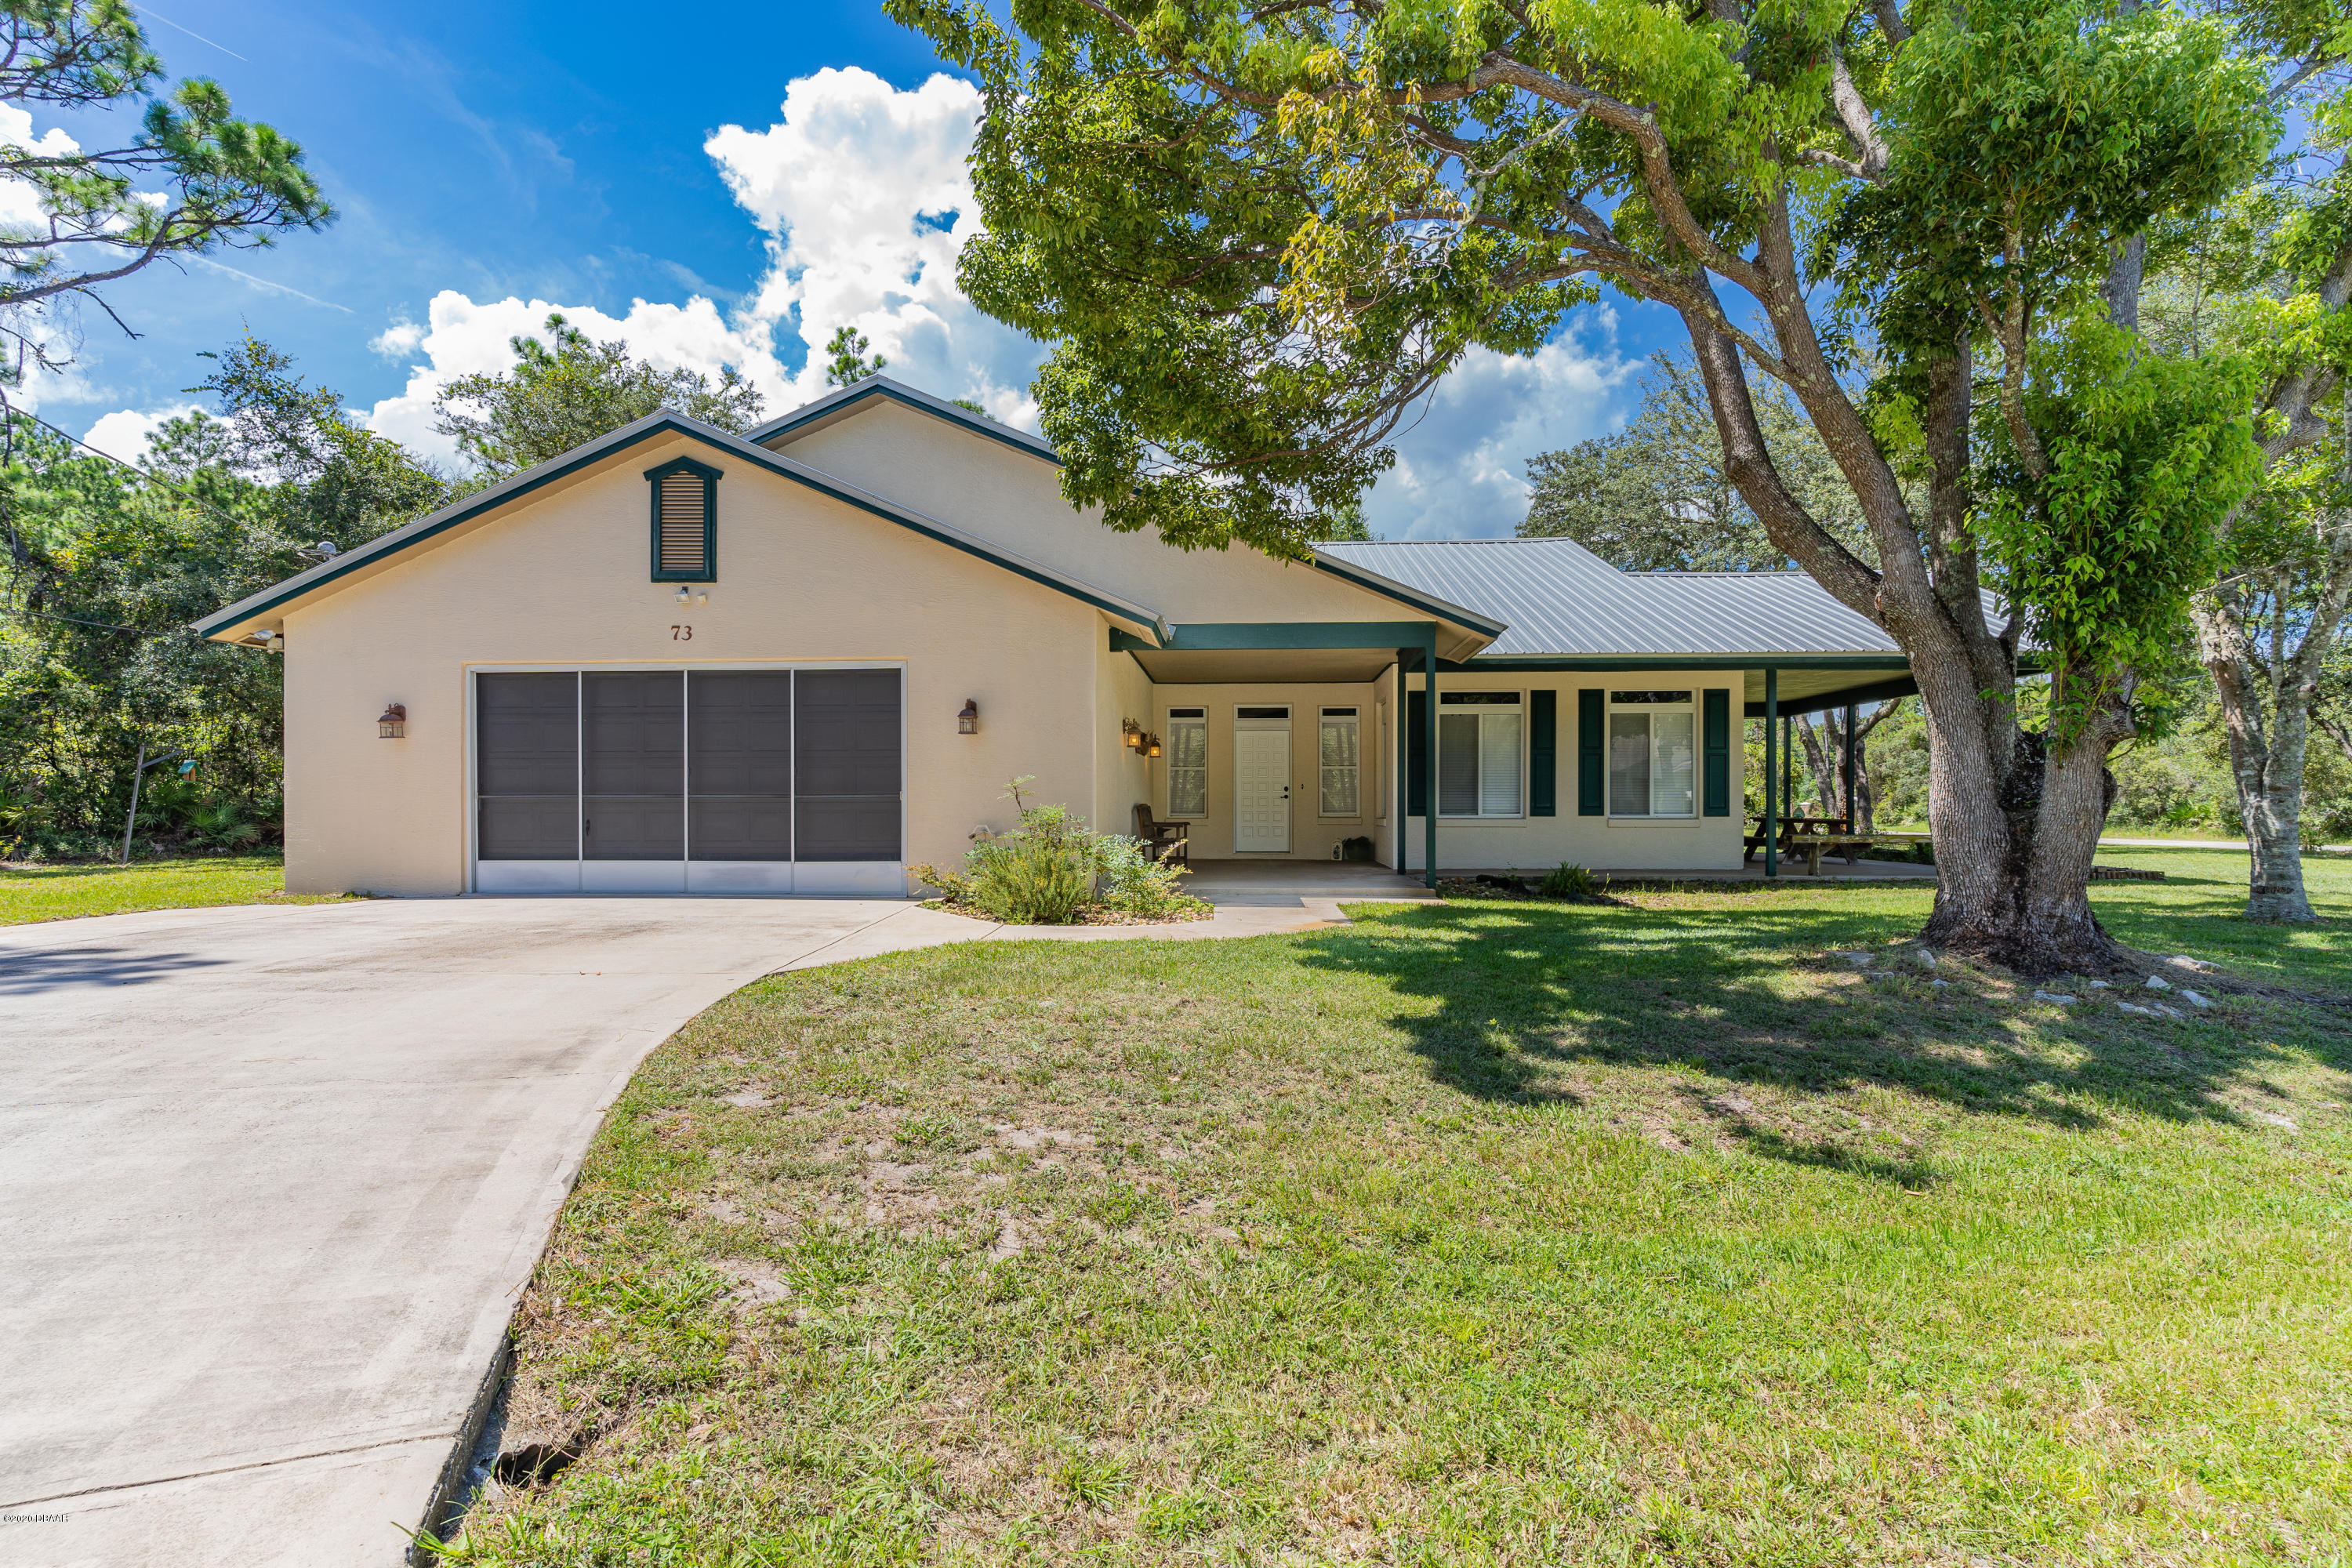 Photo of 73 Zaun Trail, Palm Coast, FL 32164